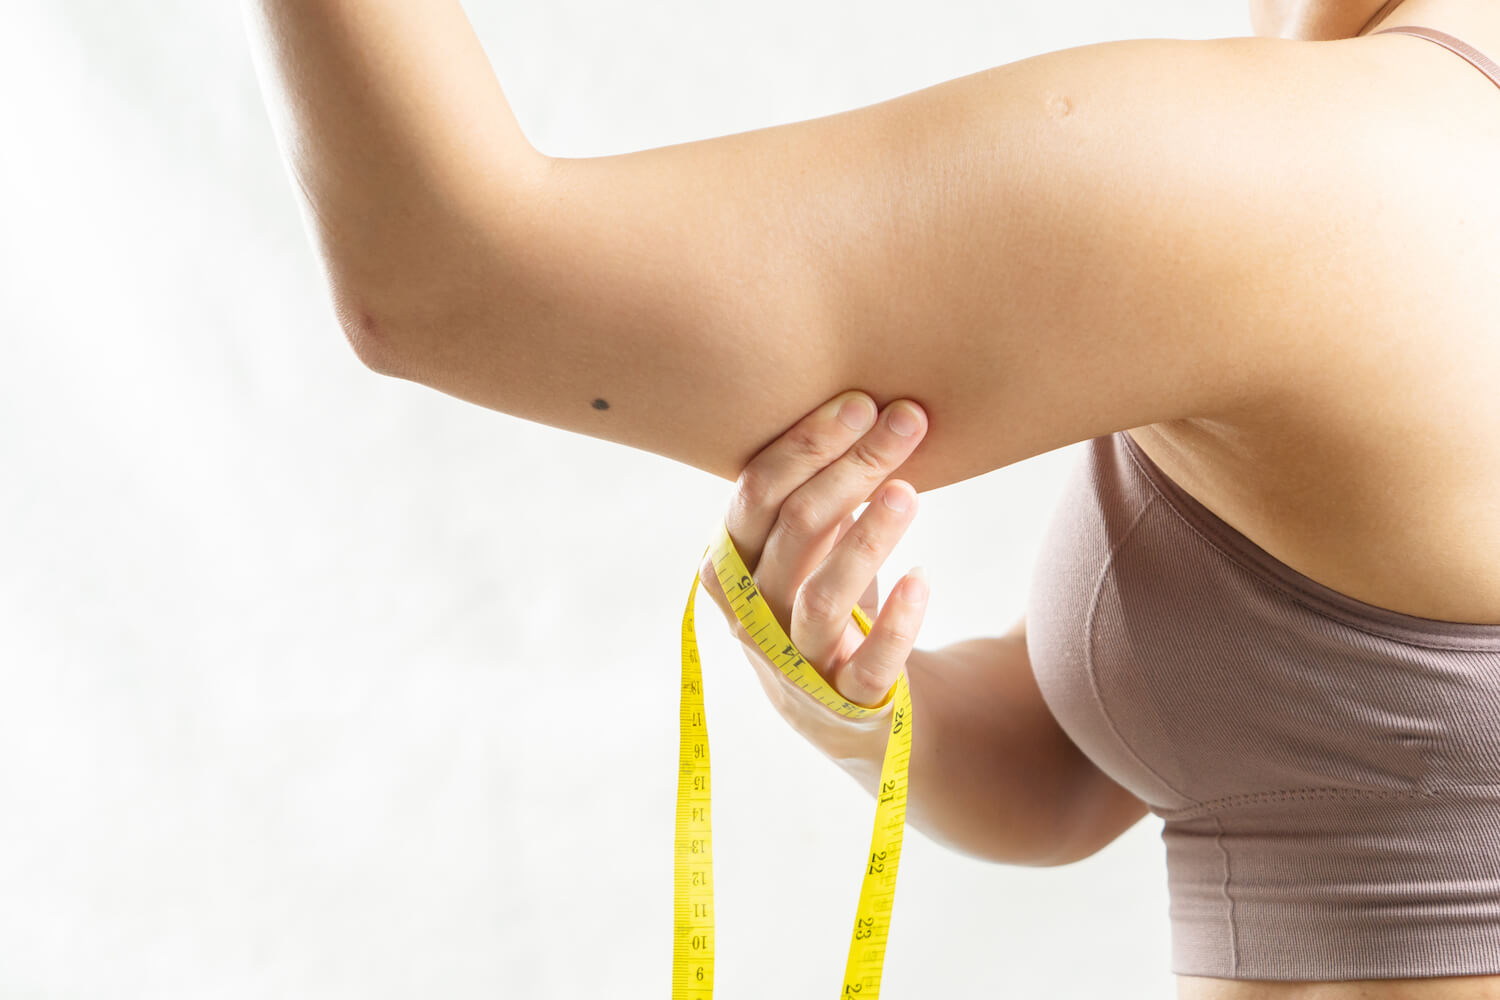 woman pinching excessive arm fat, for skin tightening